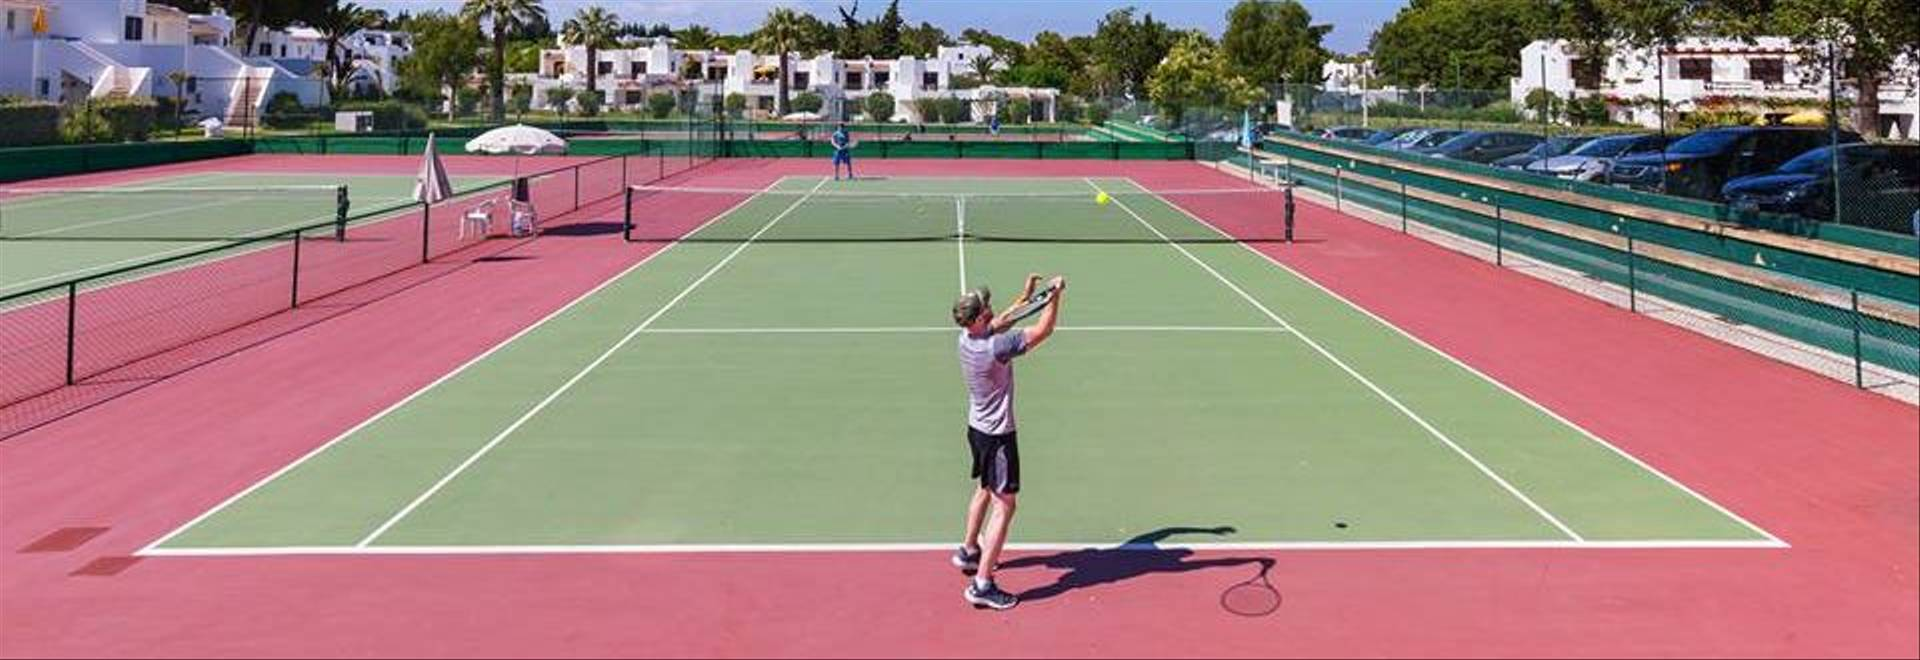 Tennis Balaia Golf Village Courts - photo 3.jpg